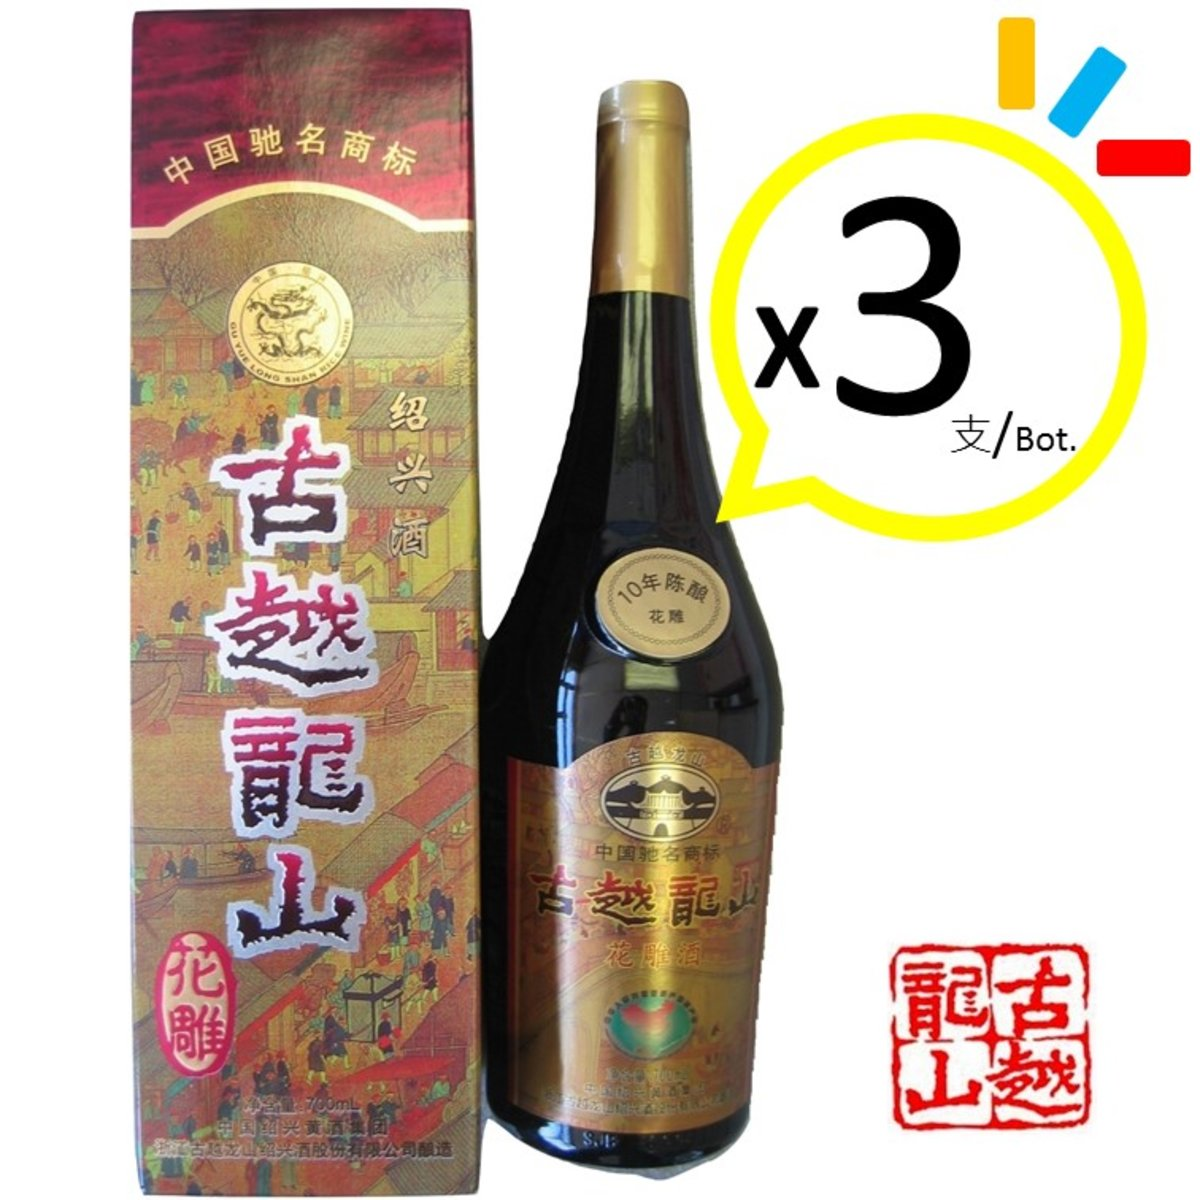 Chen Nian Shao Xing Hua Diao Wine 10 Years Golden x3 Bottles